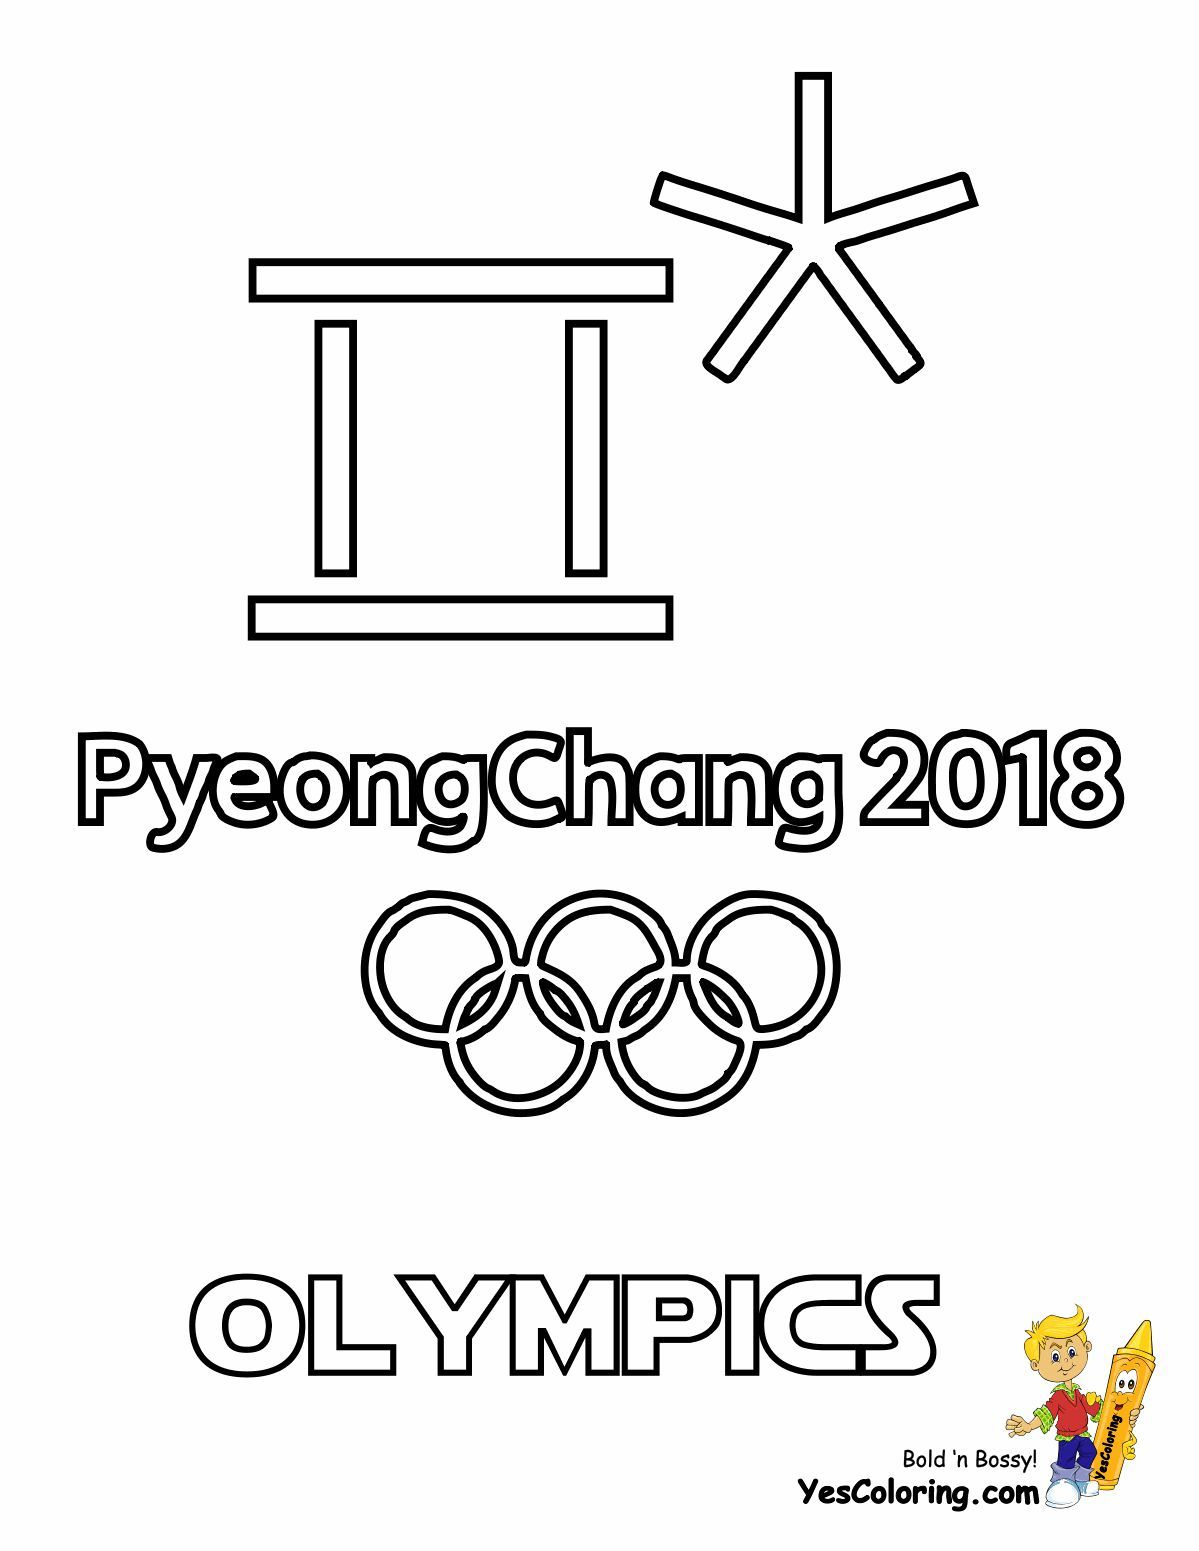 Print Out This Olympic Logo Coloring Page Stop Foolin Tell